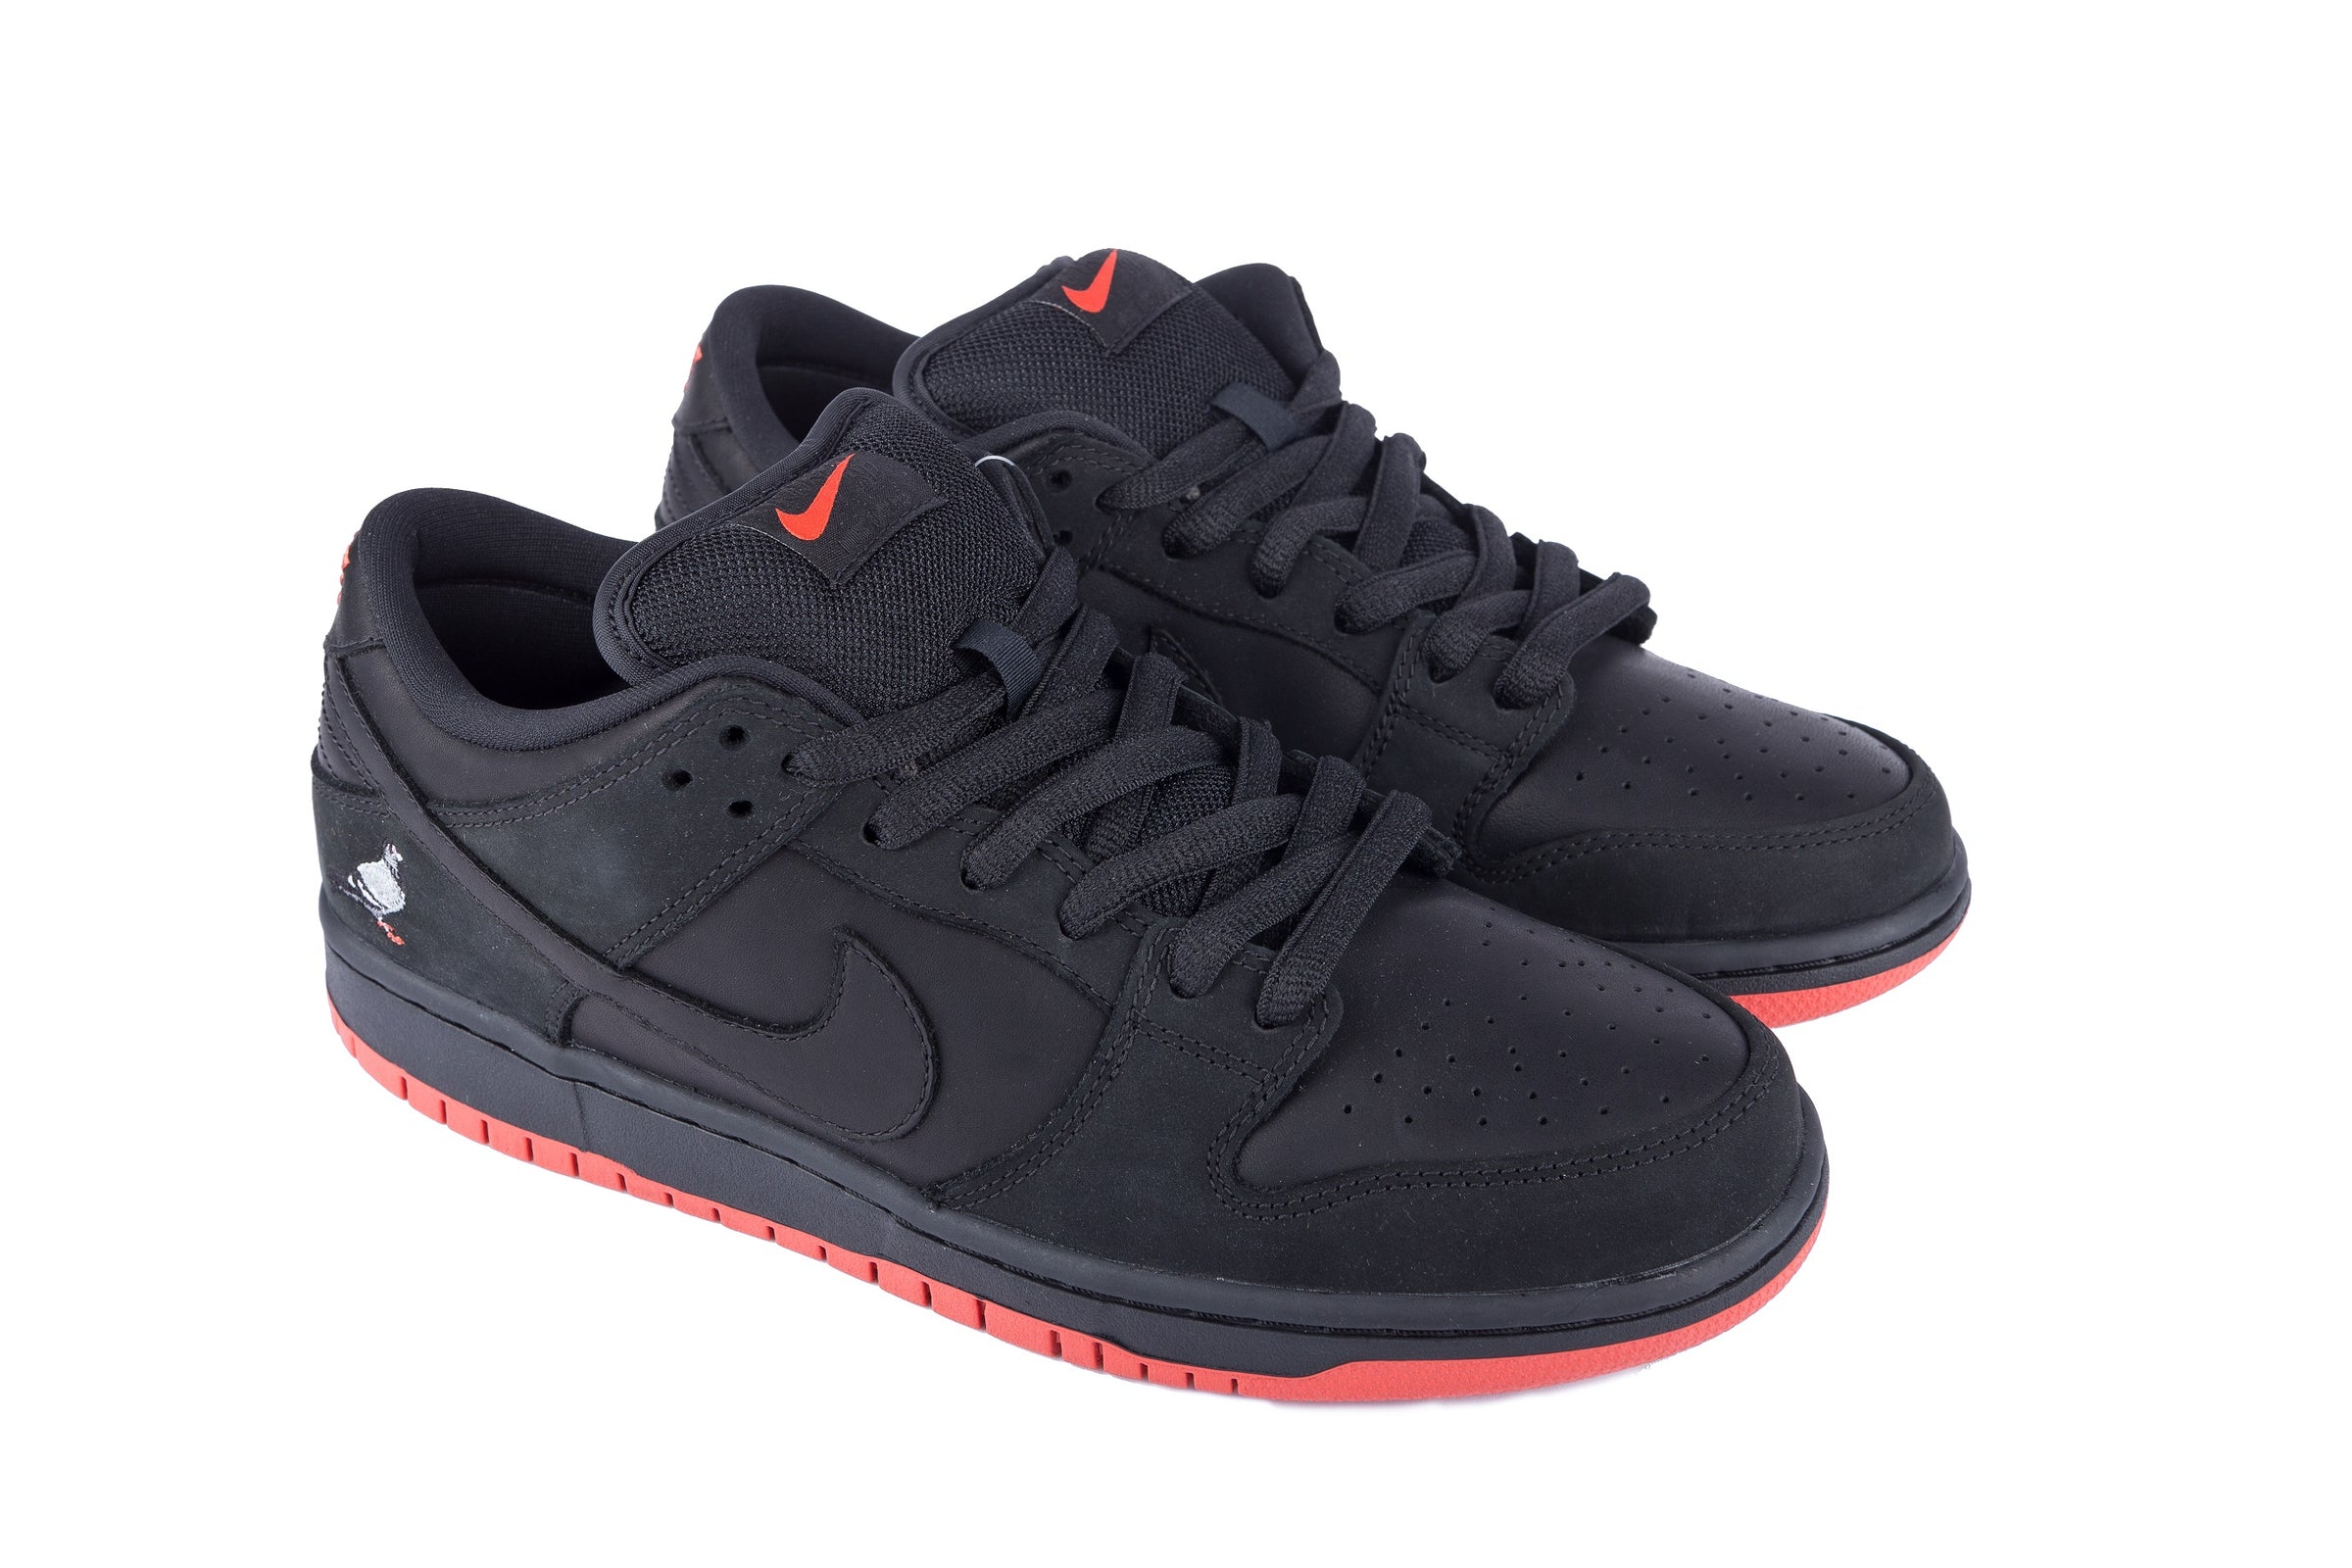 cheaper 4f7be 280a9 Staple x Nike SB Black Pigeon - Shoes  Staple Pigeon